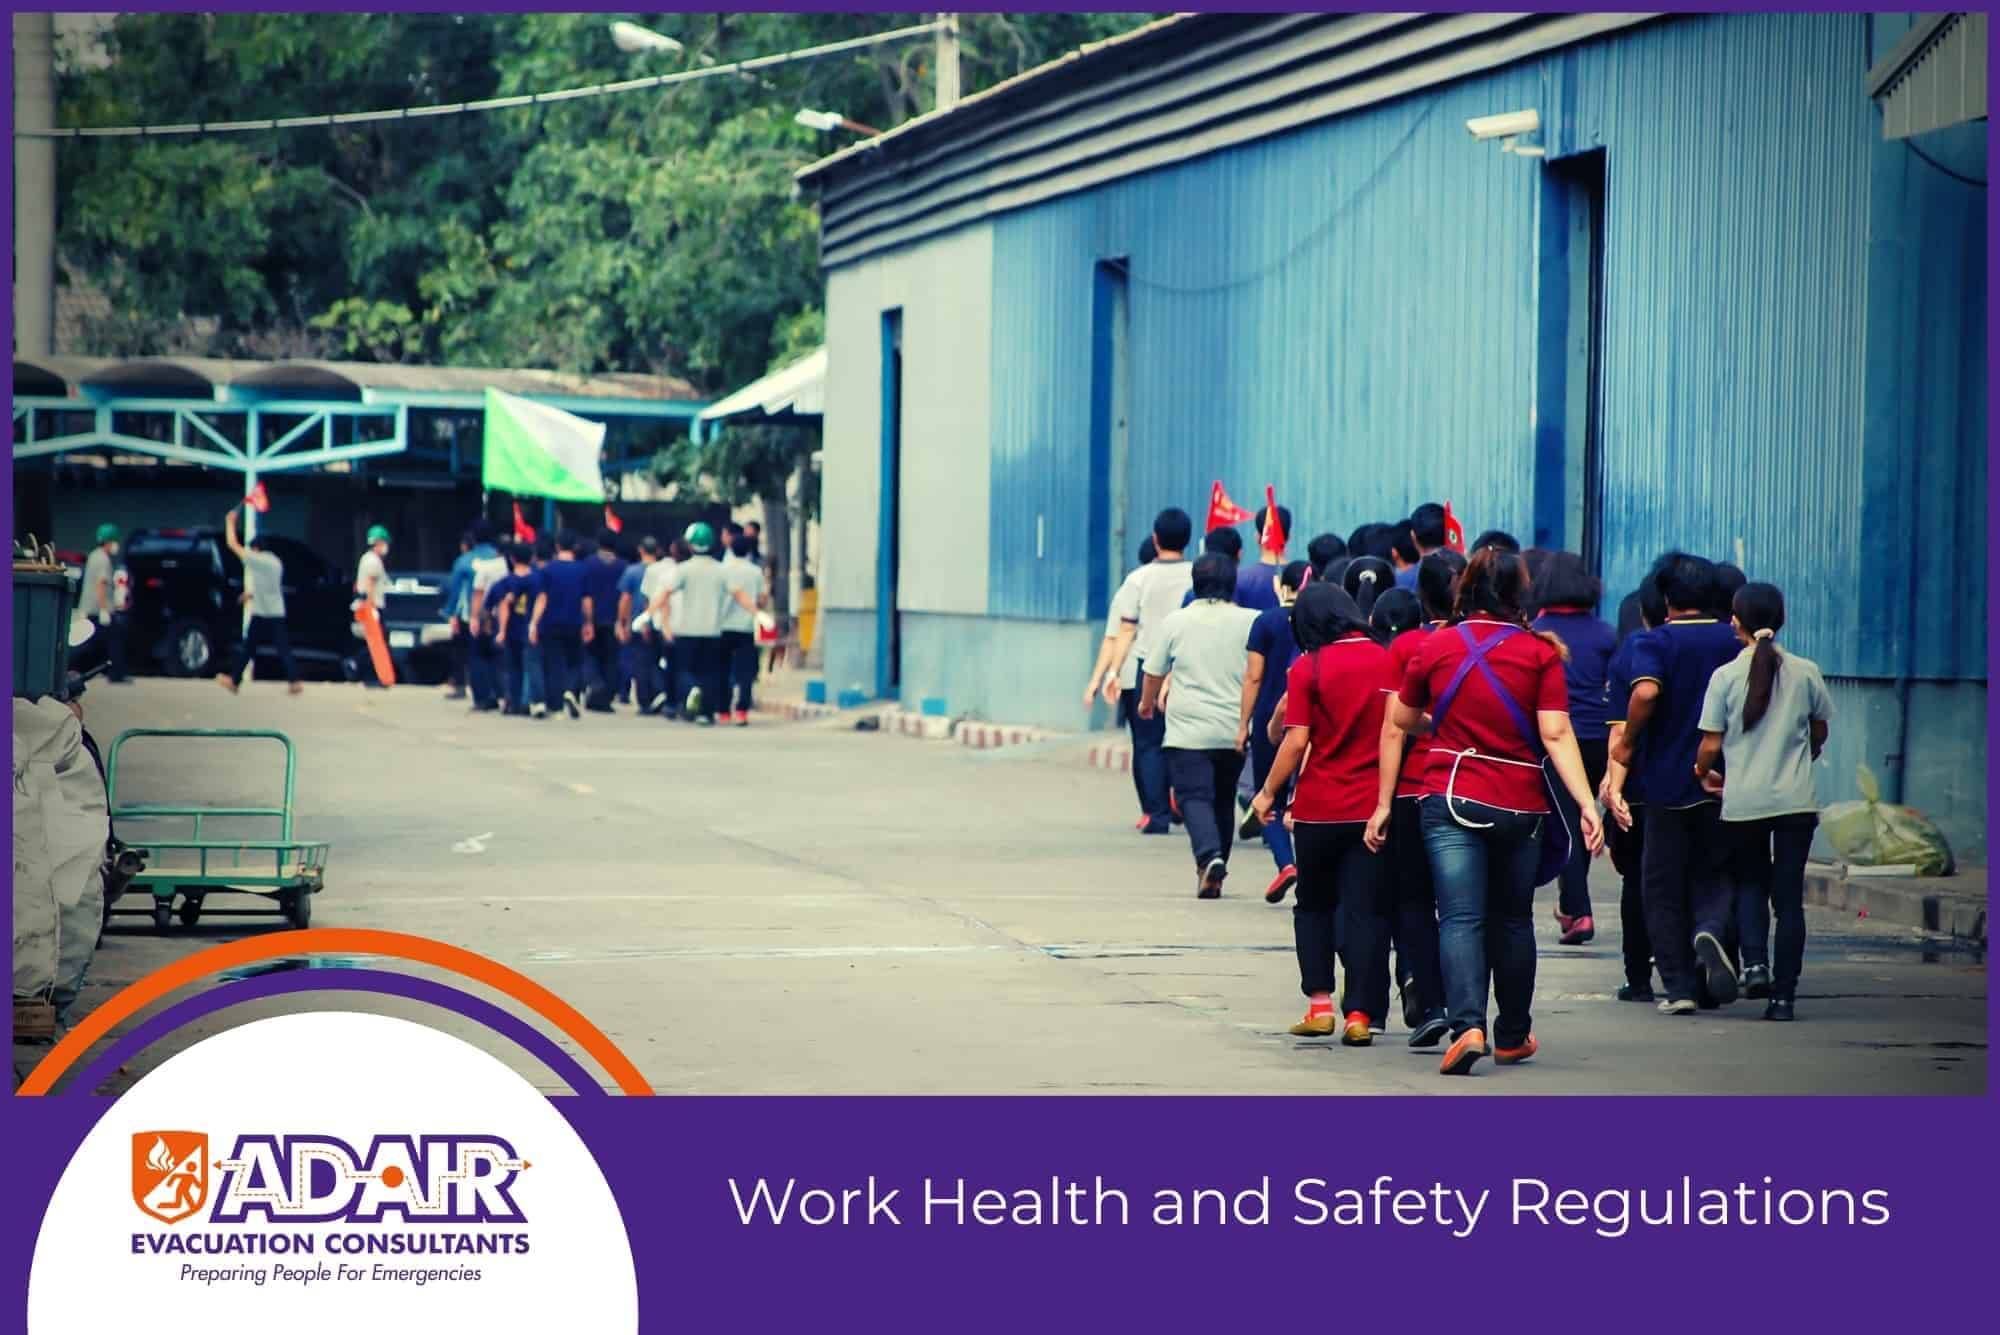 Work Health and Safety Regulations